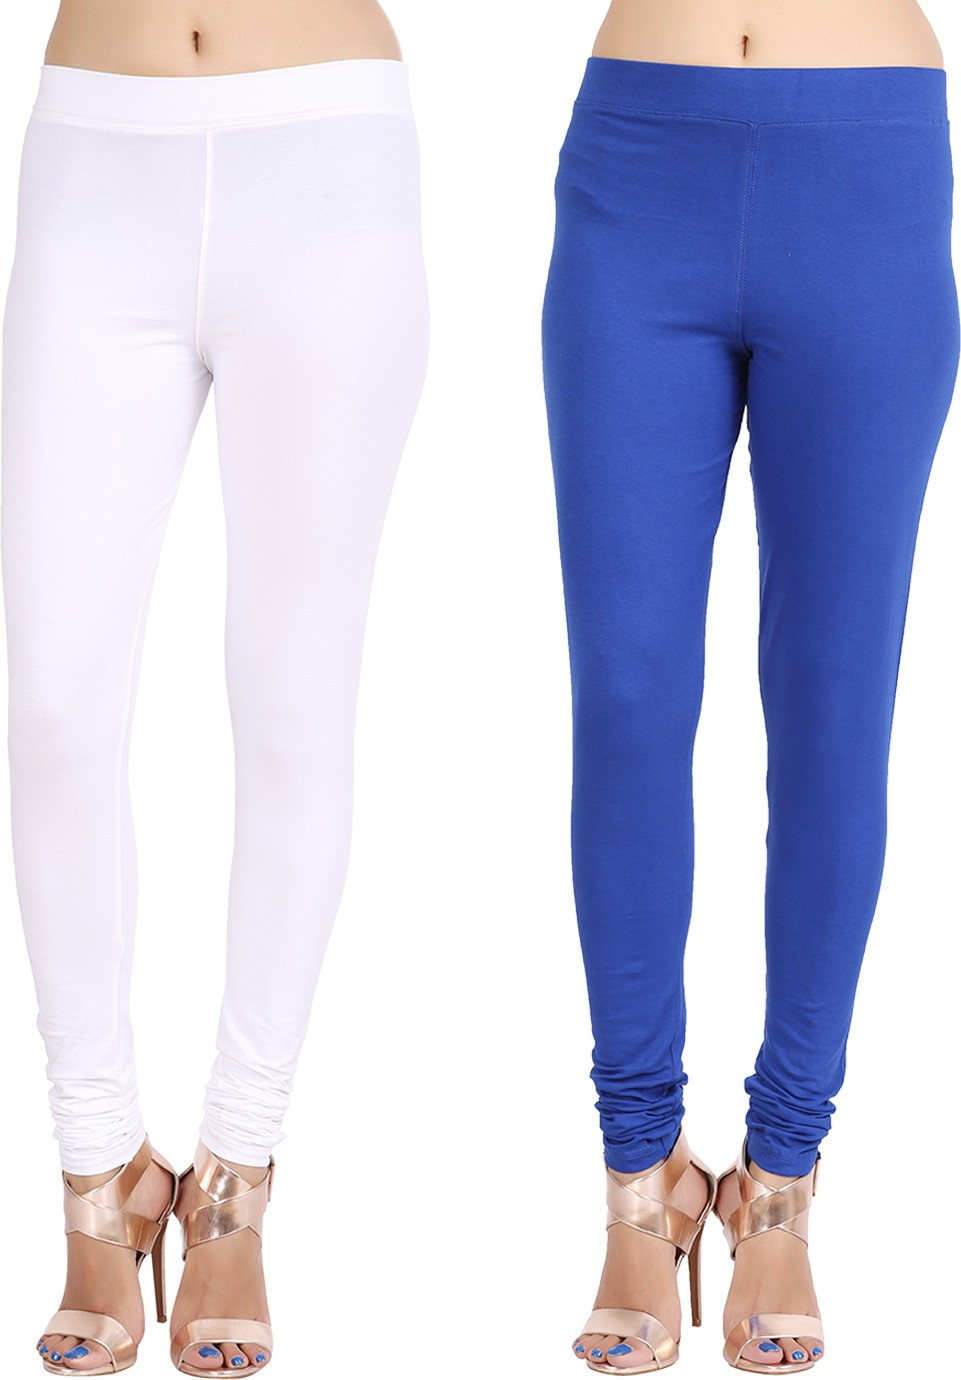 Lula Ms Womens White, Dark Blue Leggings(Pack of 2)